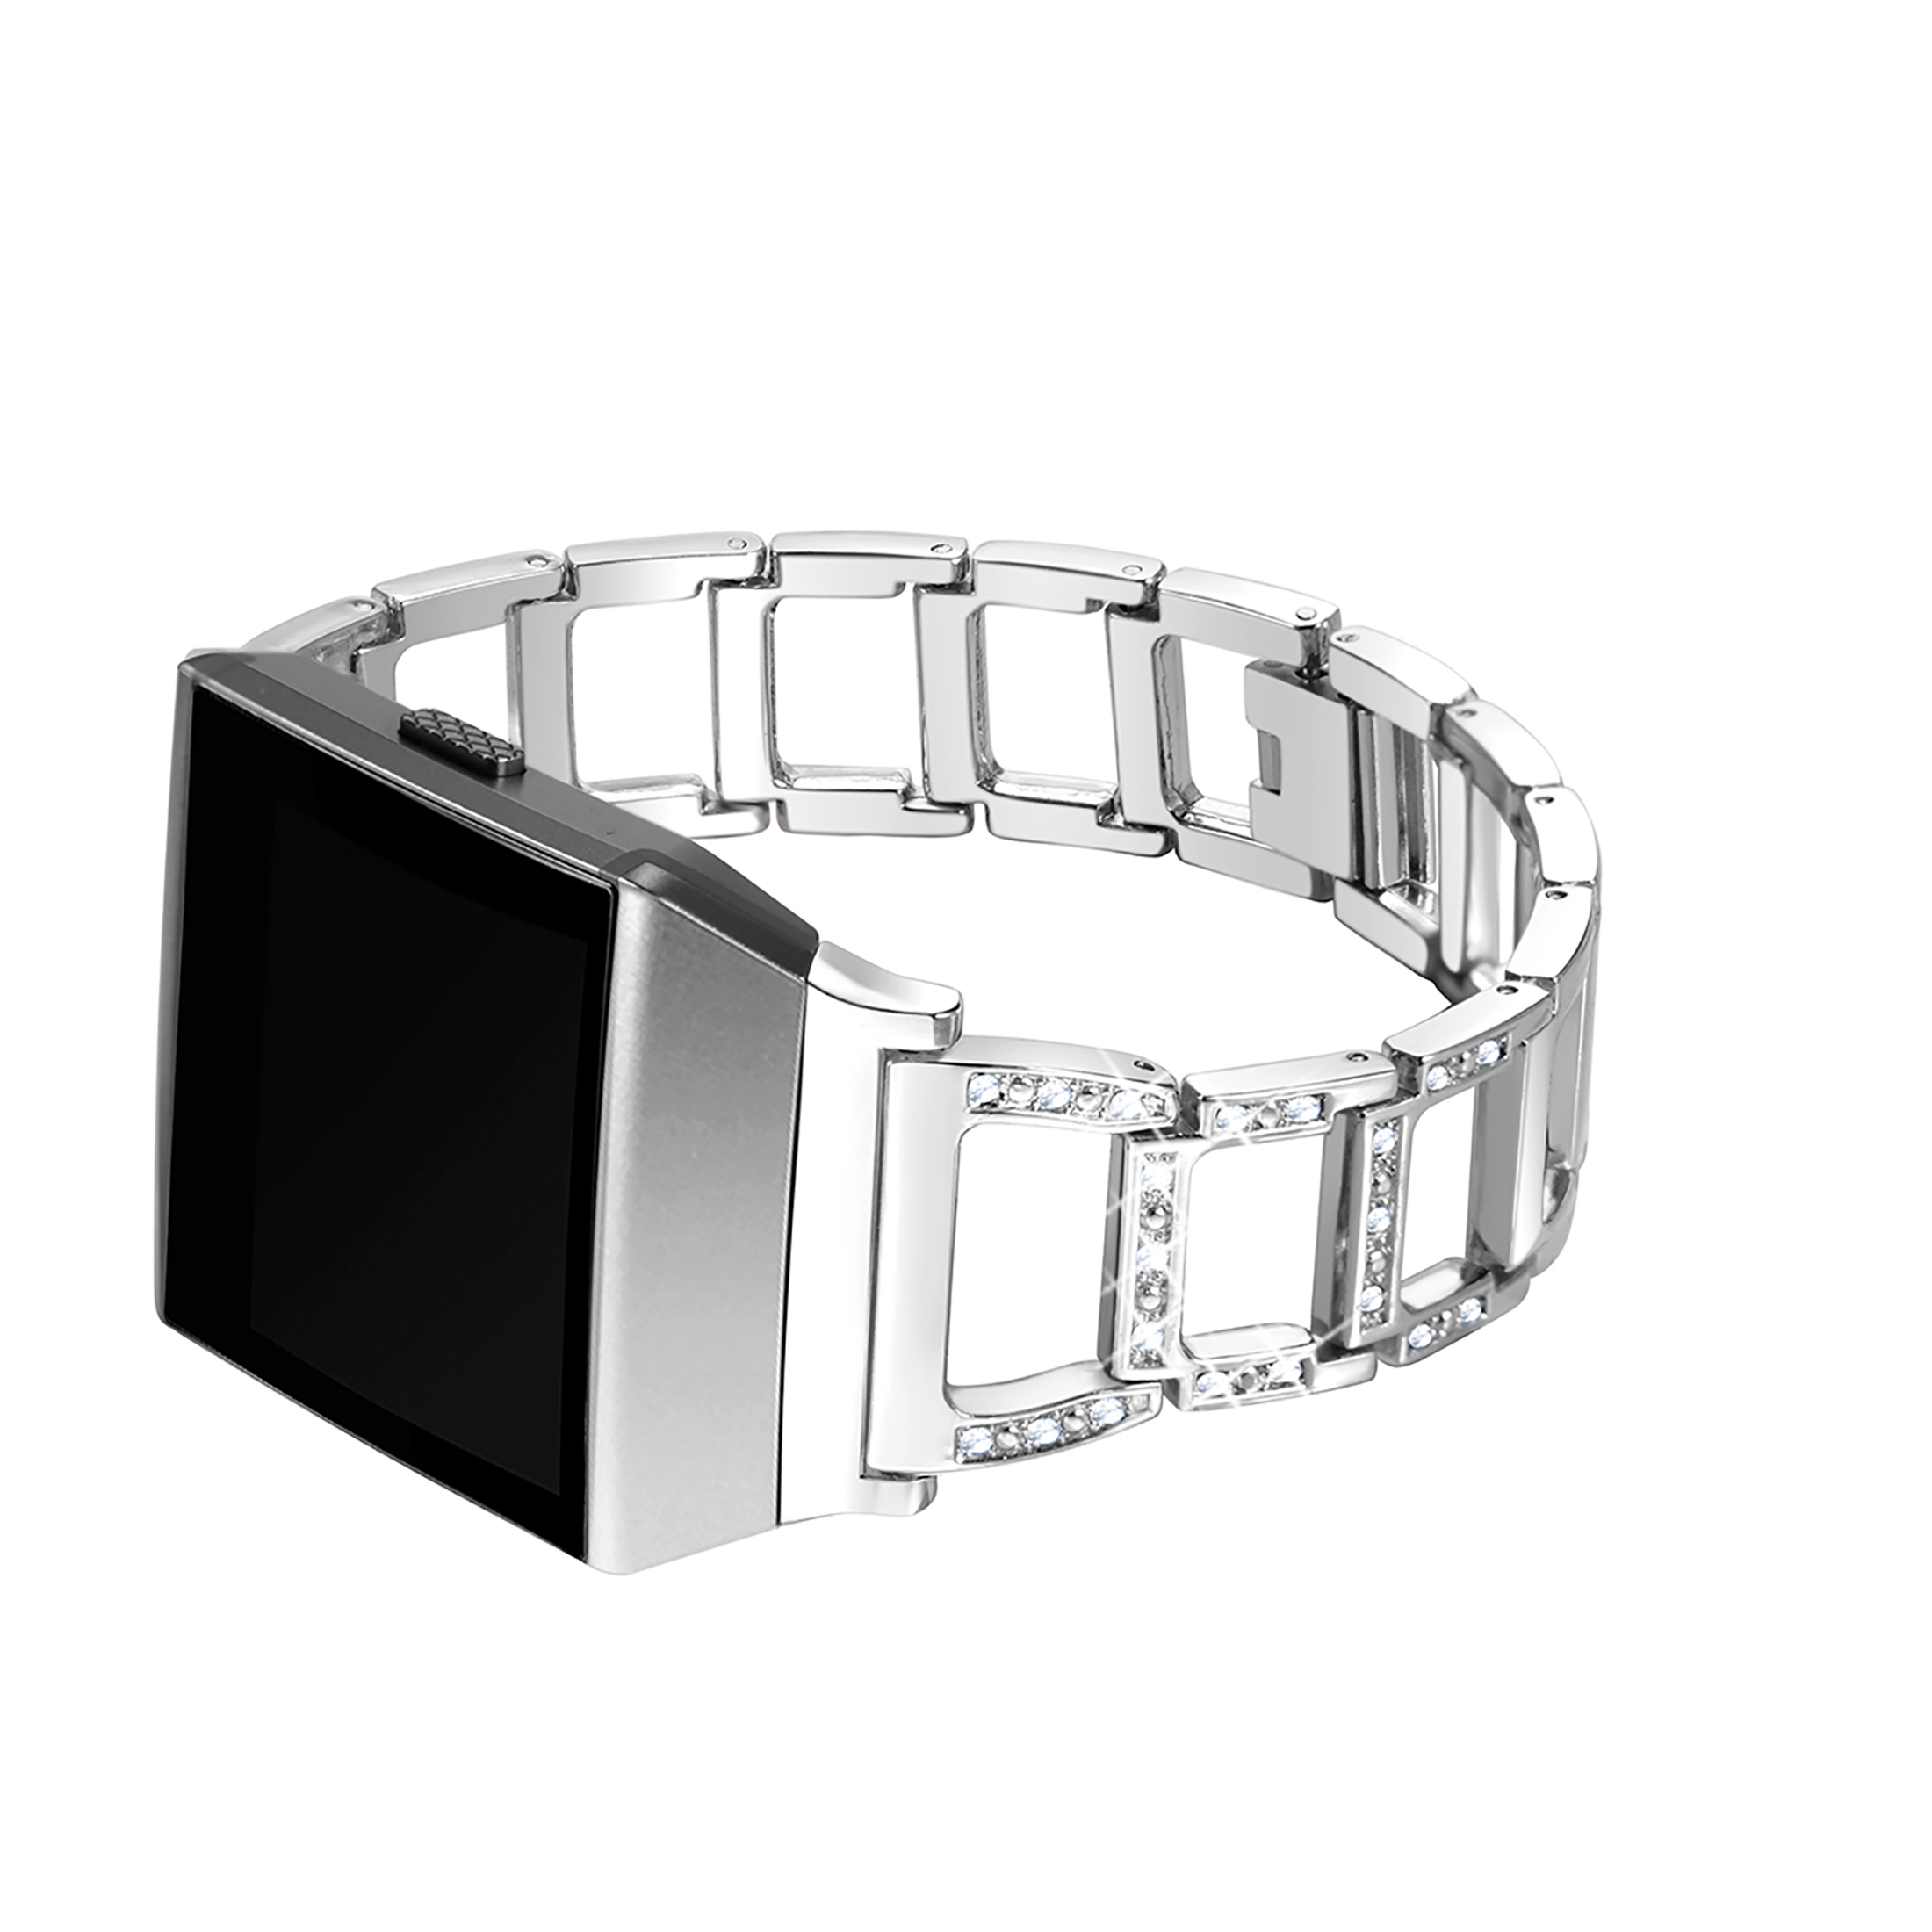 For Fitbit Ionic, bayite Replacement Metal Bracelet Adjustable Fitbit Ionic Bands Silver with Rhinestone